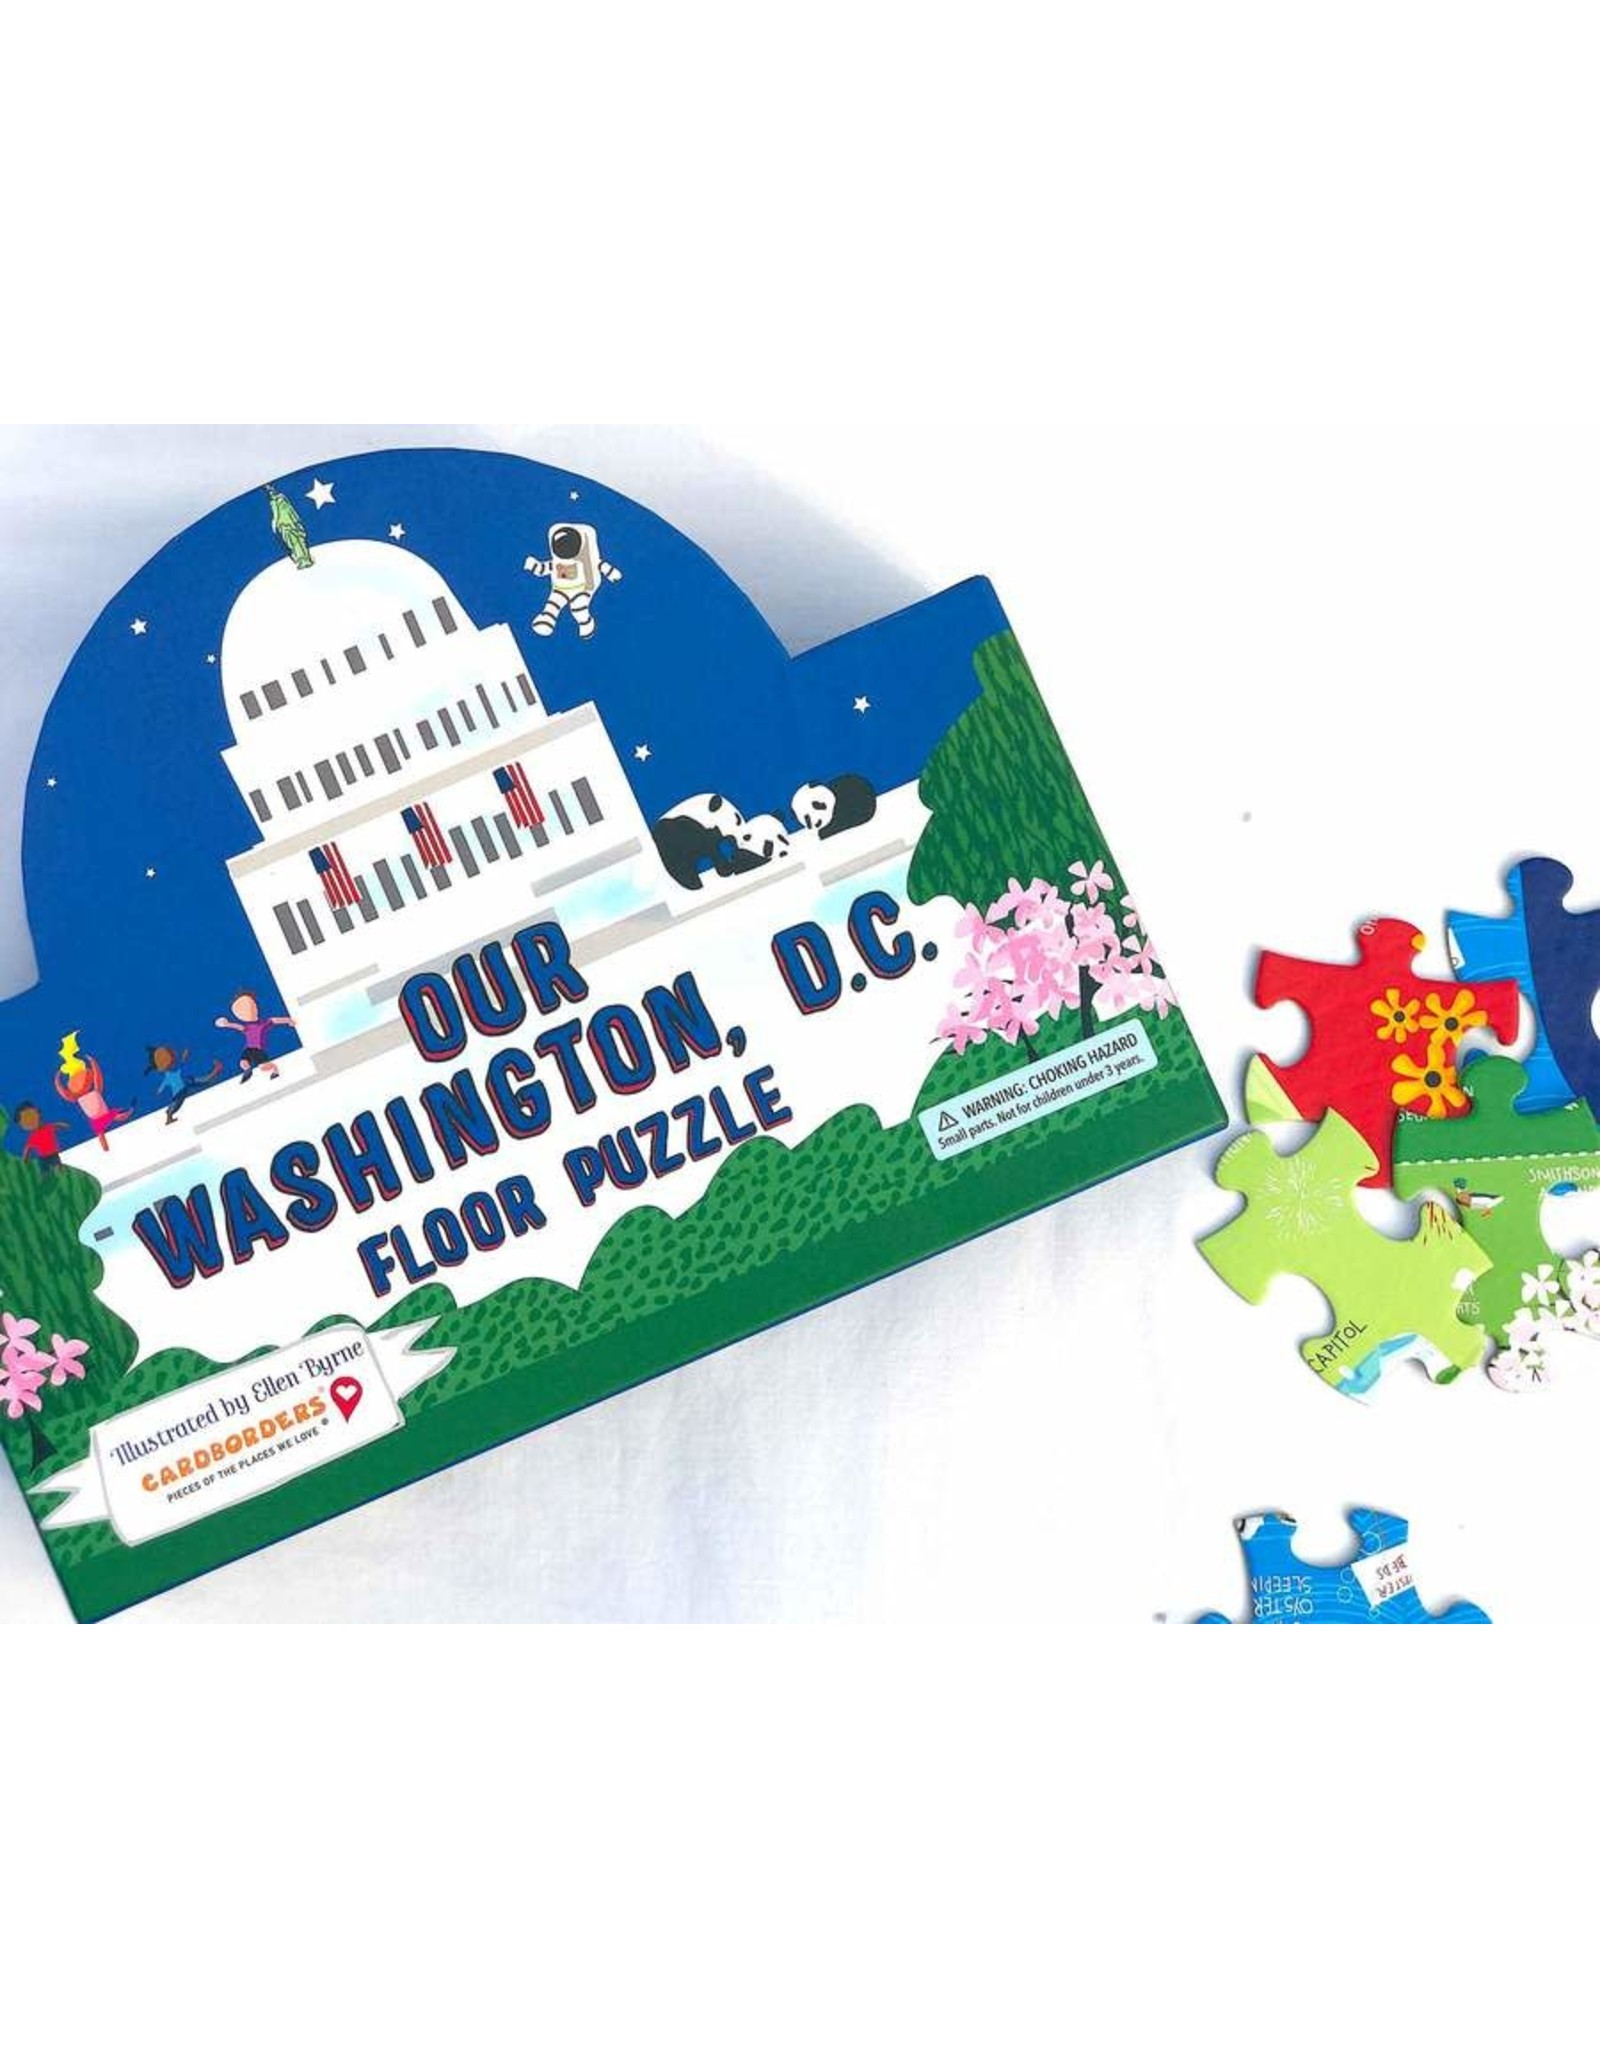 Our Washington DC Floor Puzzle (100 pieces)